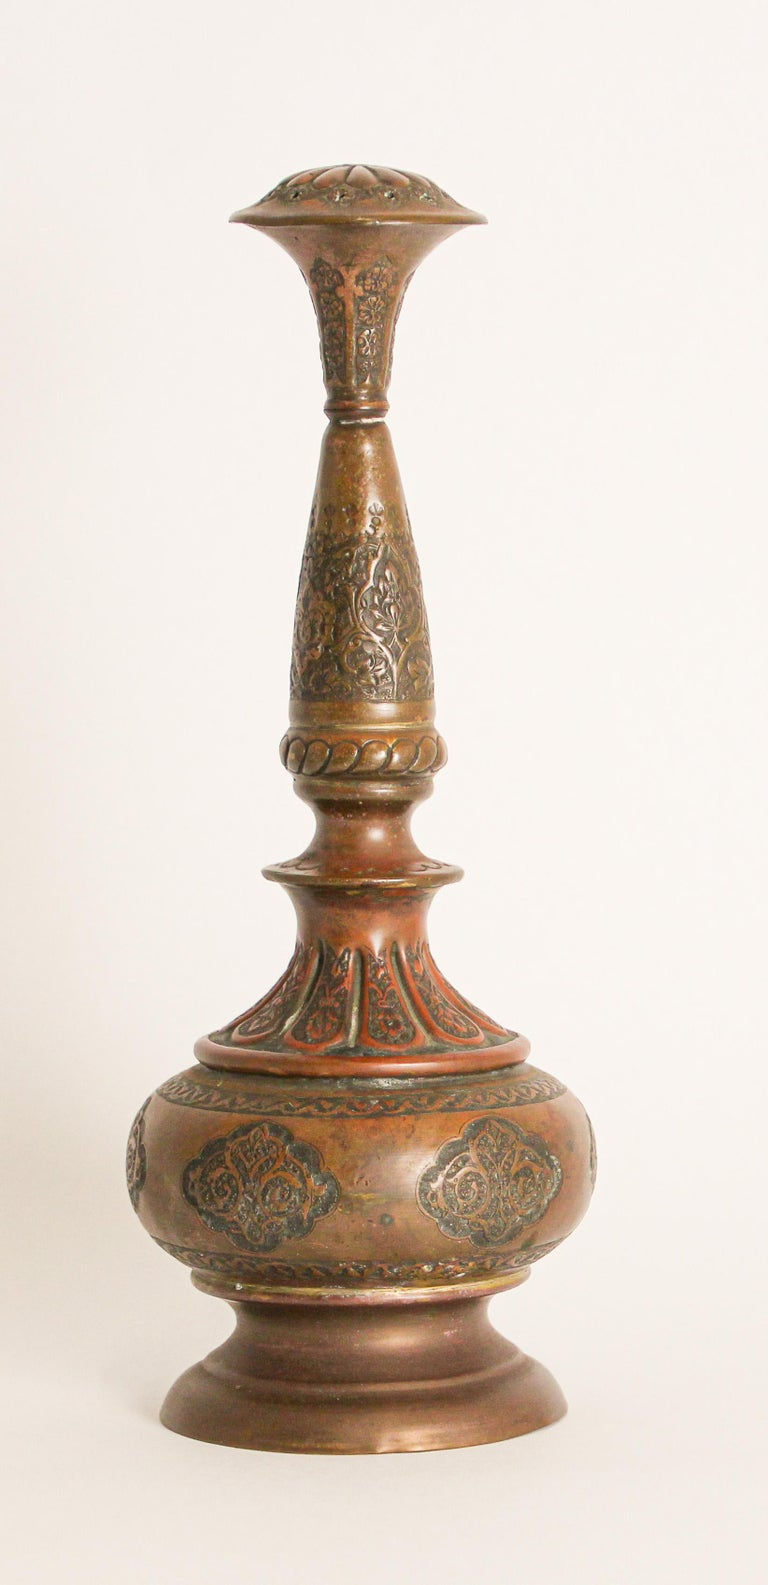 Turkey, 19th century, antique handcrafted ottoman Moorish decorative copper rosewater perfume sprinkler. Embossed and hand chased, engraved and punched decoration to body with floral and geometric Islamic Moorish designs with screw-able top with